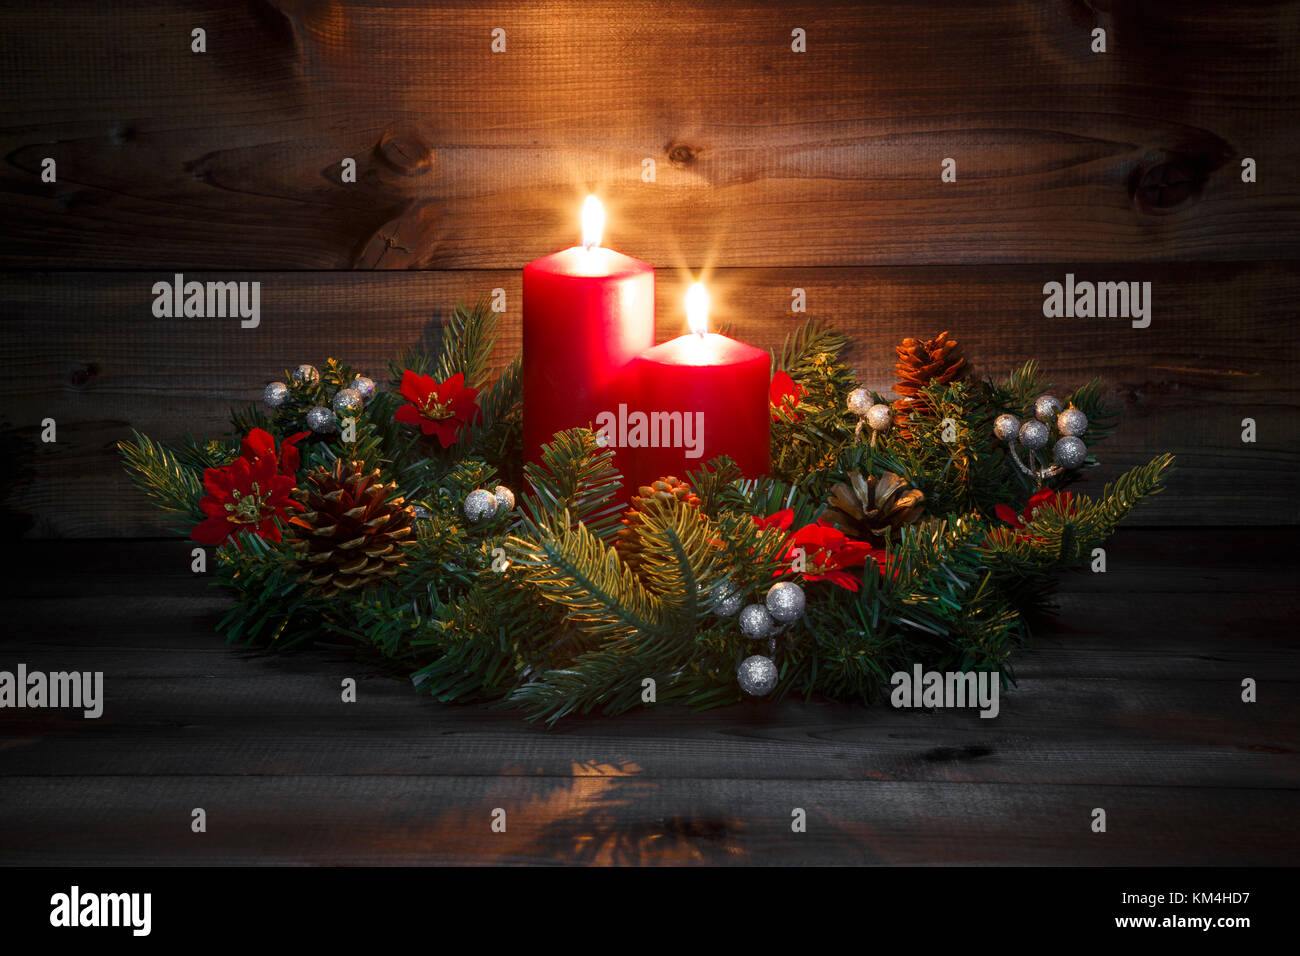 Bilder Zum Advent Second Advent Decorated Advent Wreath With Two Red Burning